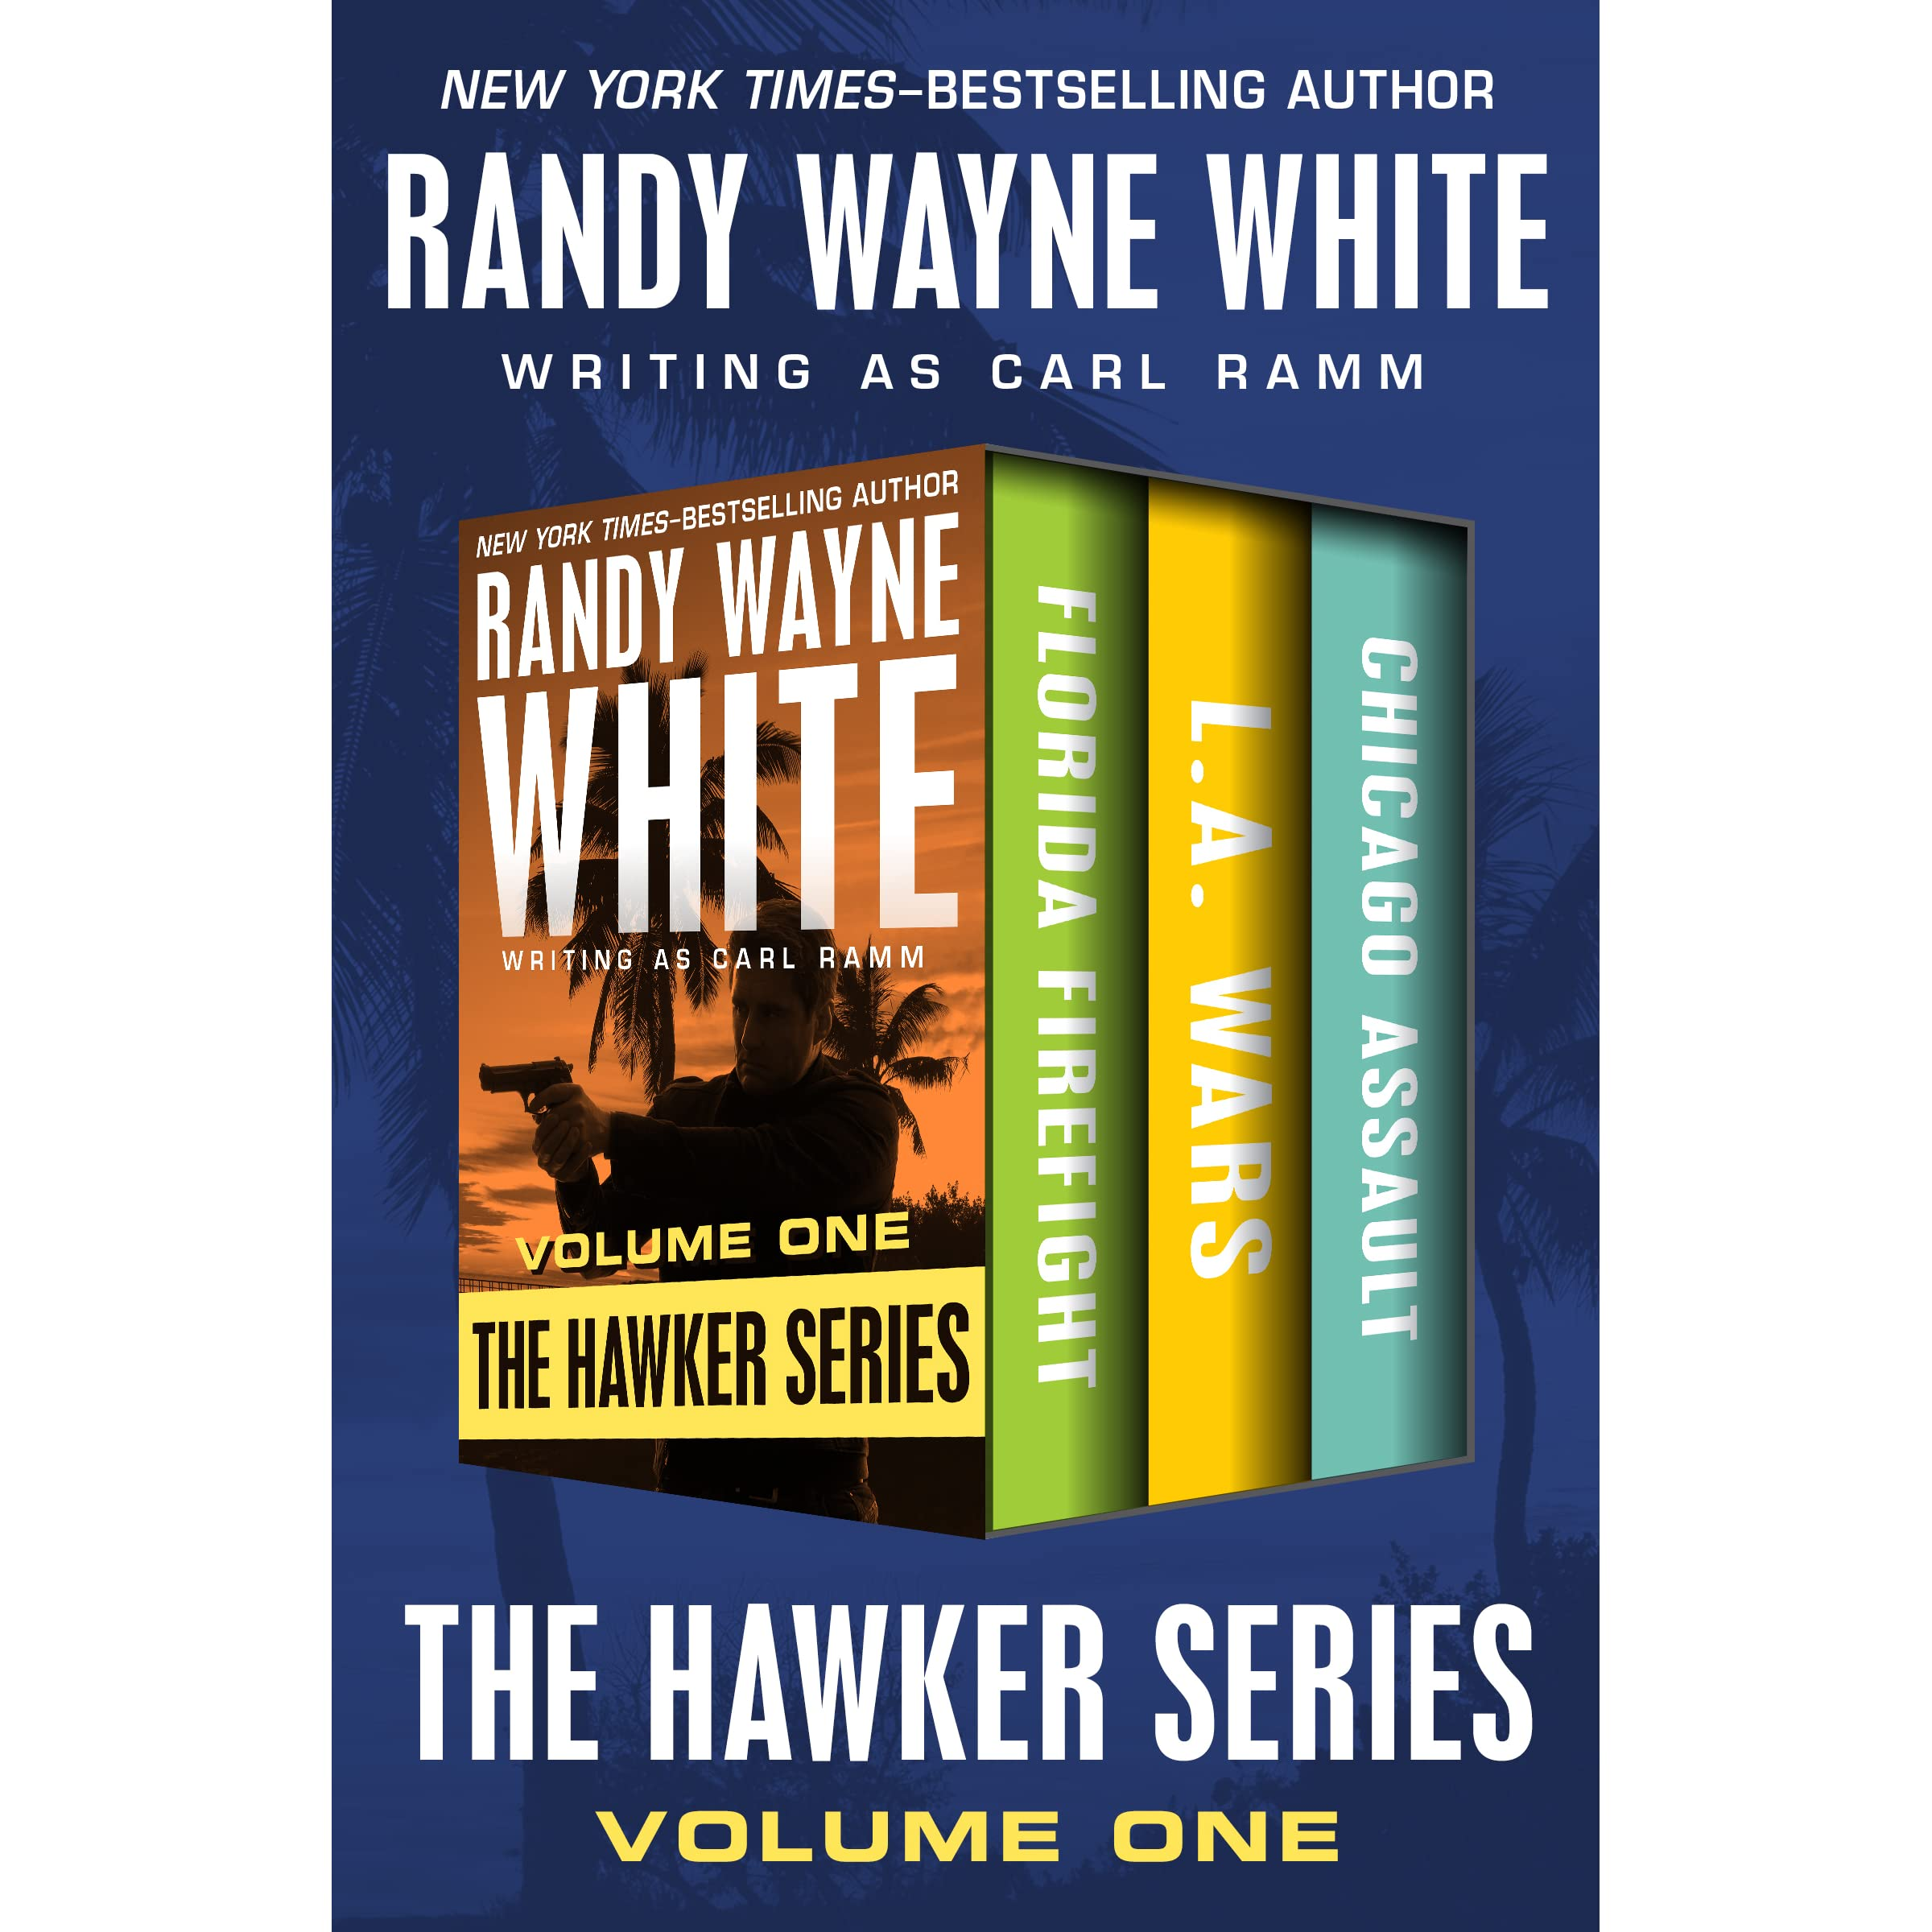 The Hawker Series Volume One: Florida Firefight, L.A. Wars, and Chicago  Assault by Carl Ramm